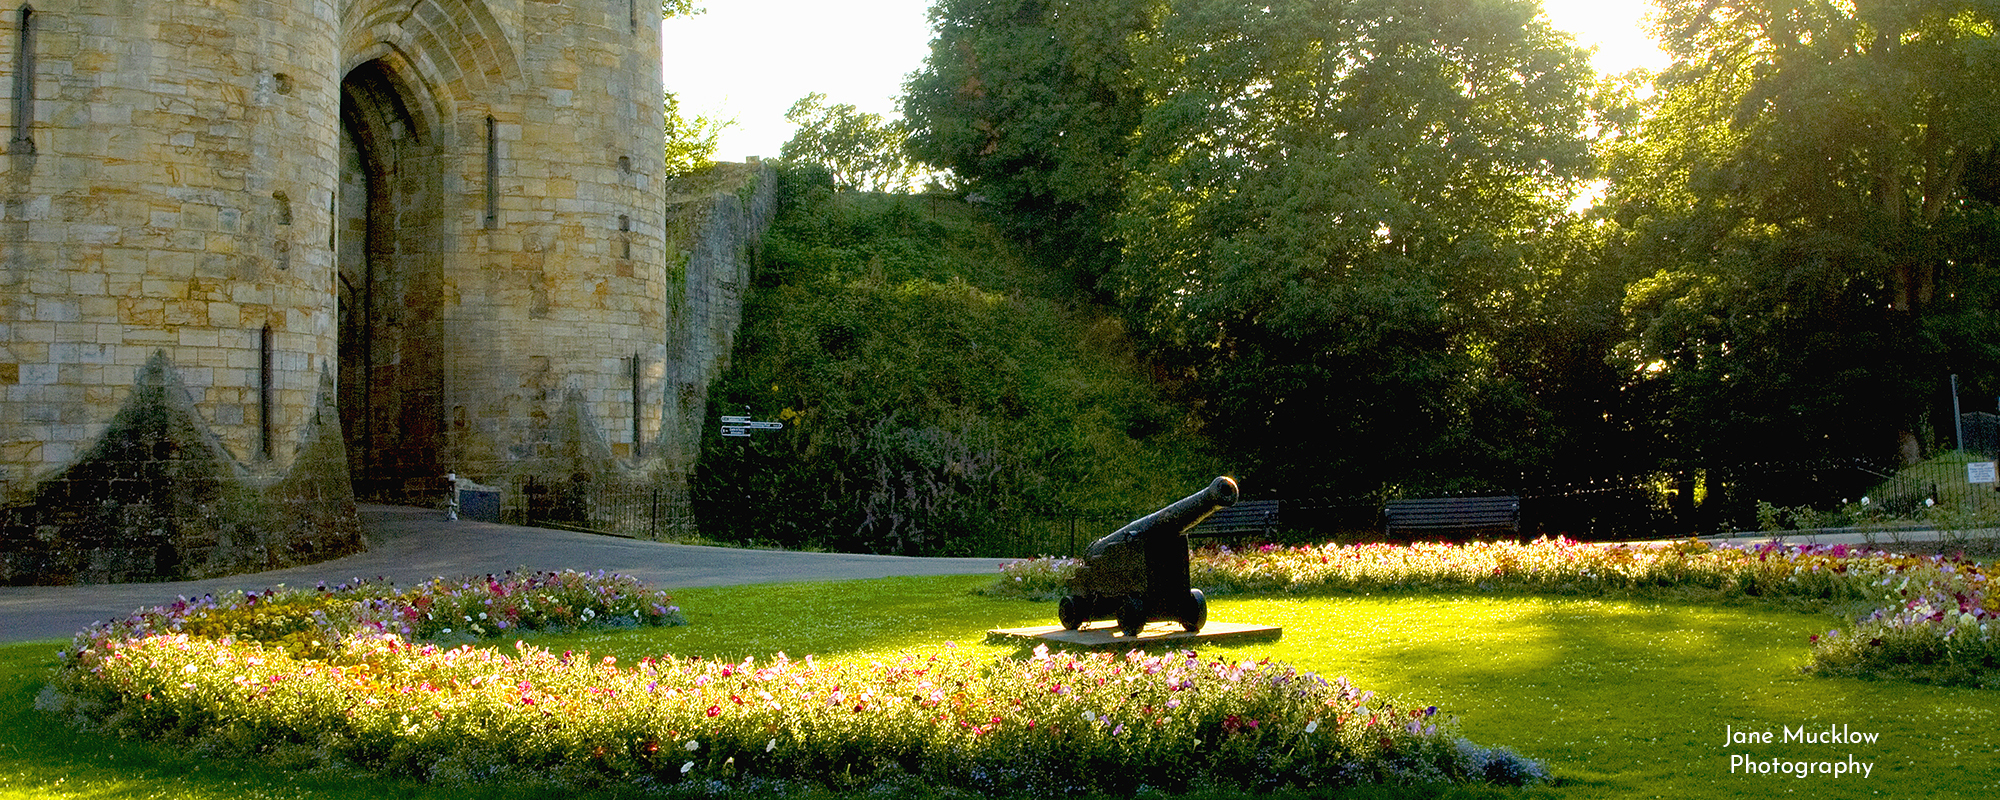 Photo by Jane Mucklow of the cannon and flowers at Tonbridge Castle, Kent, available as a canvas for your wall.